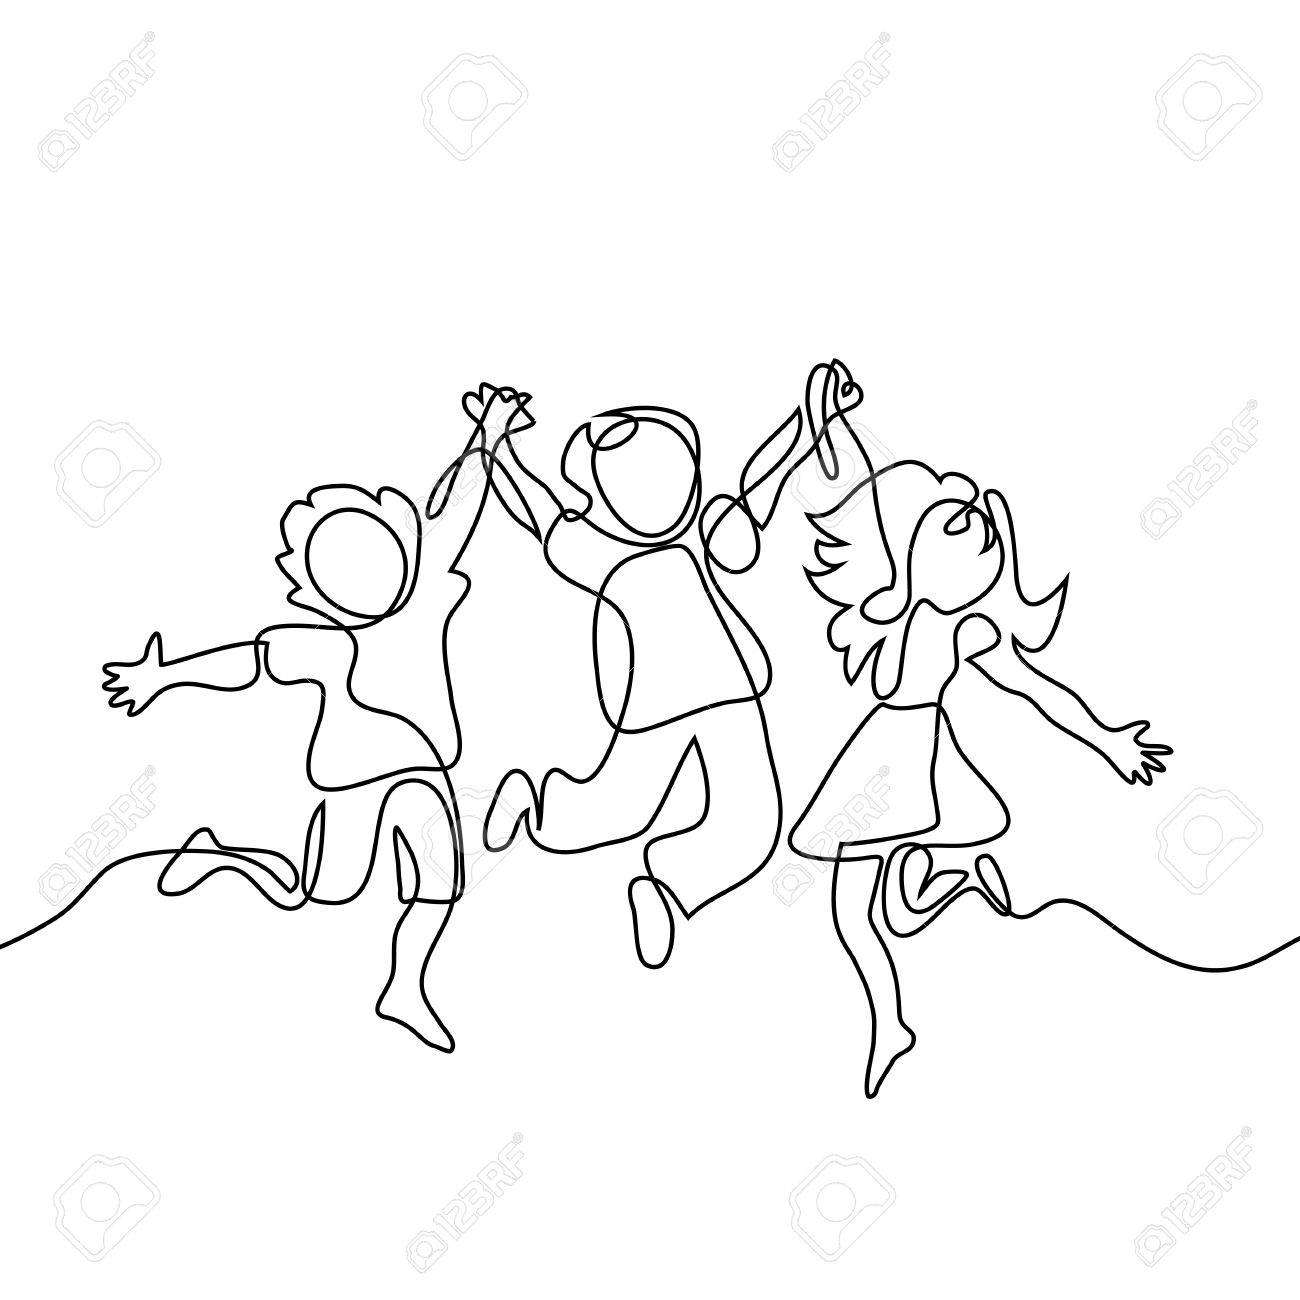 1300x1300 Happy Jumping Children Holding Hands. Continuous Line Drawing